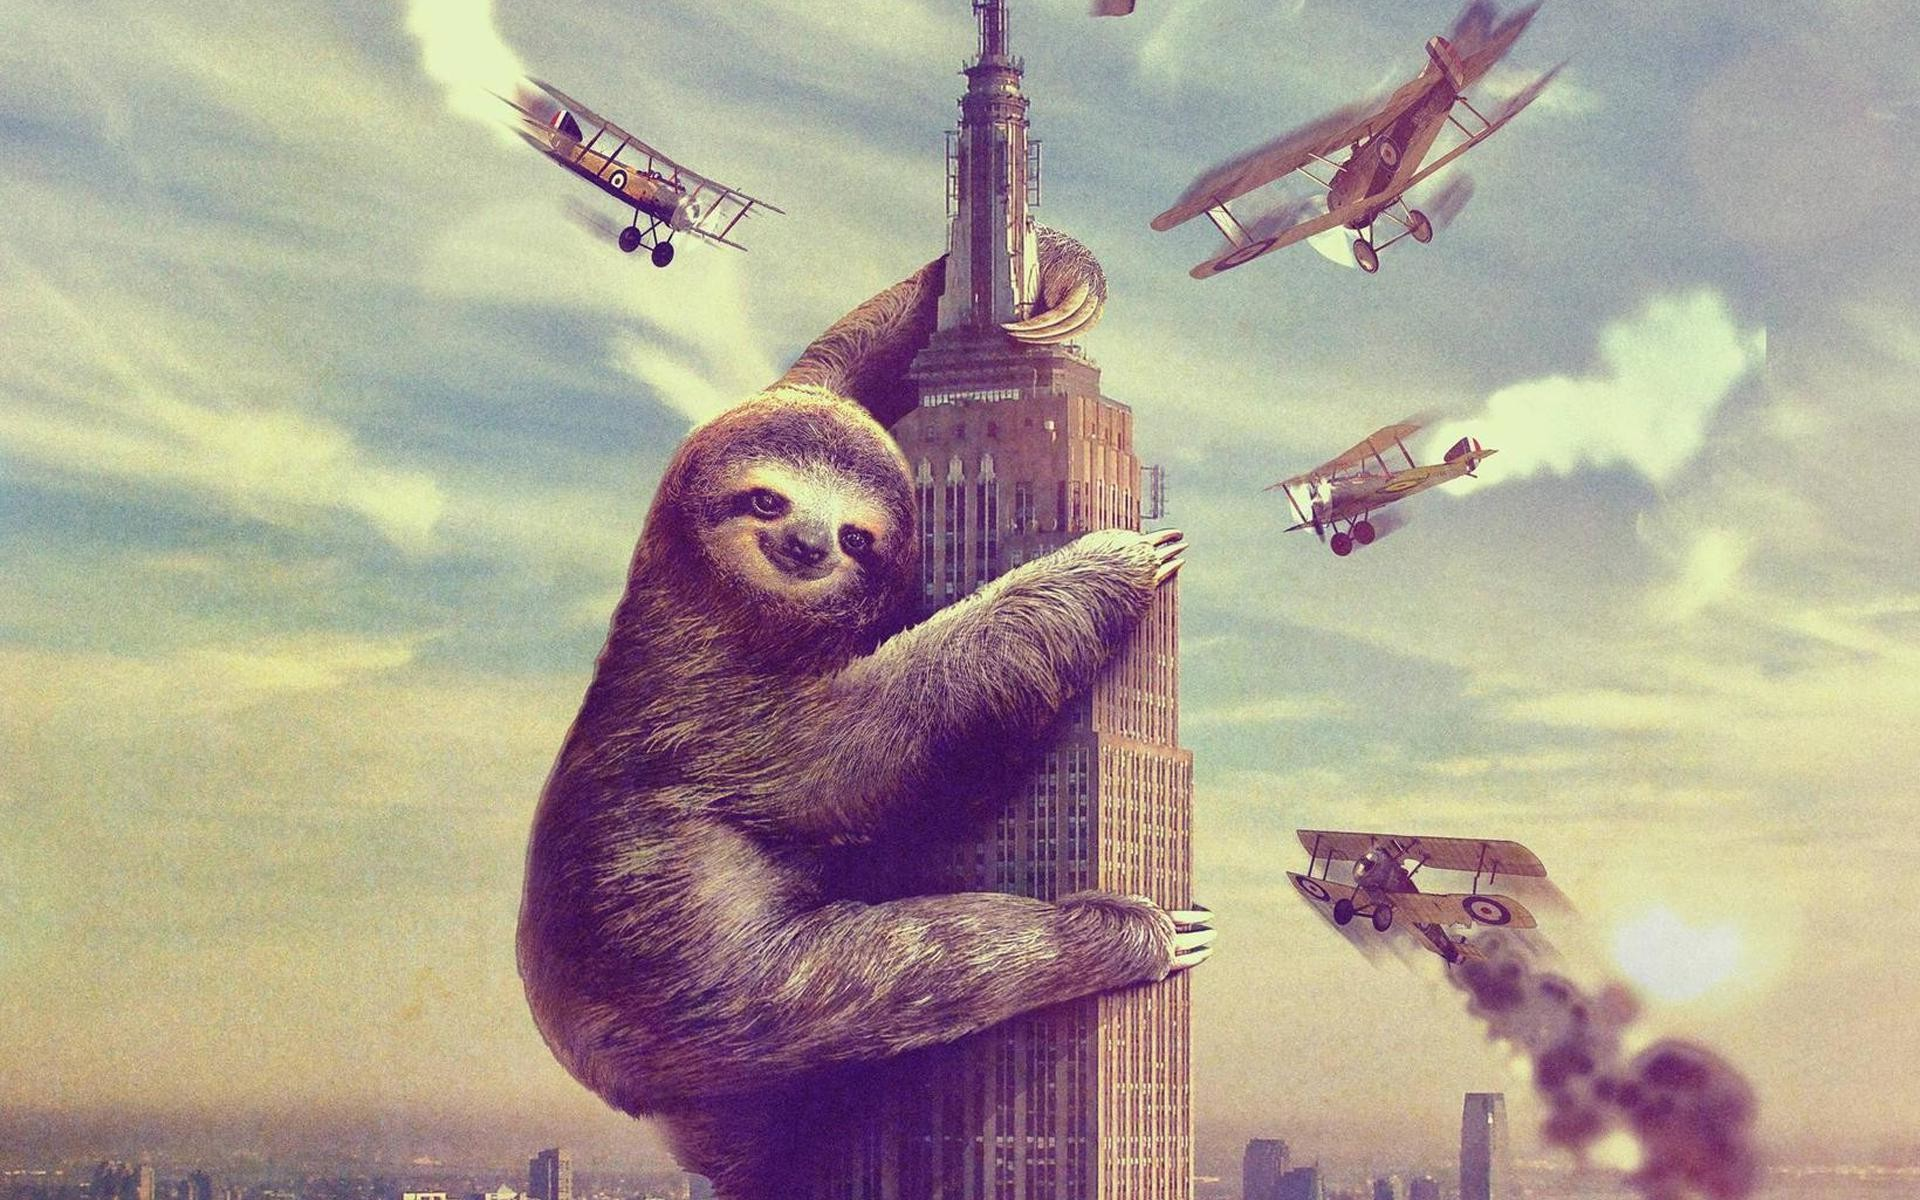 1920x1200 HD Sloth Images HD Sloth Wallpaper